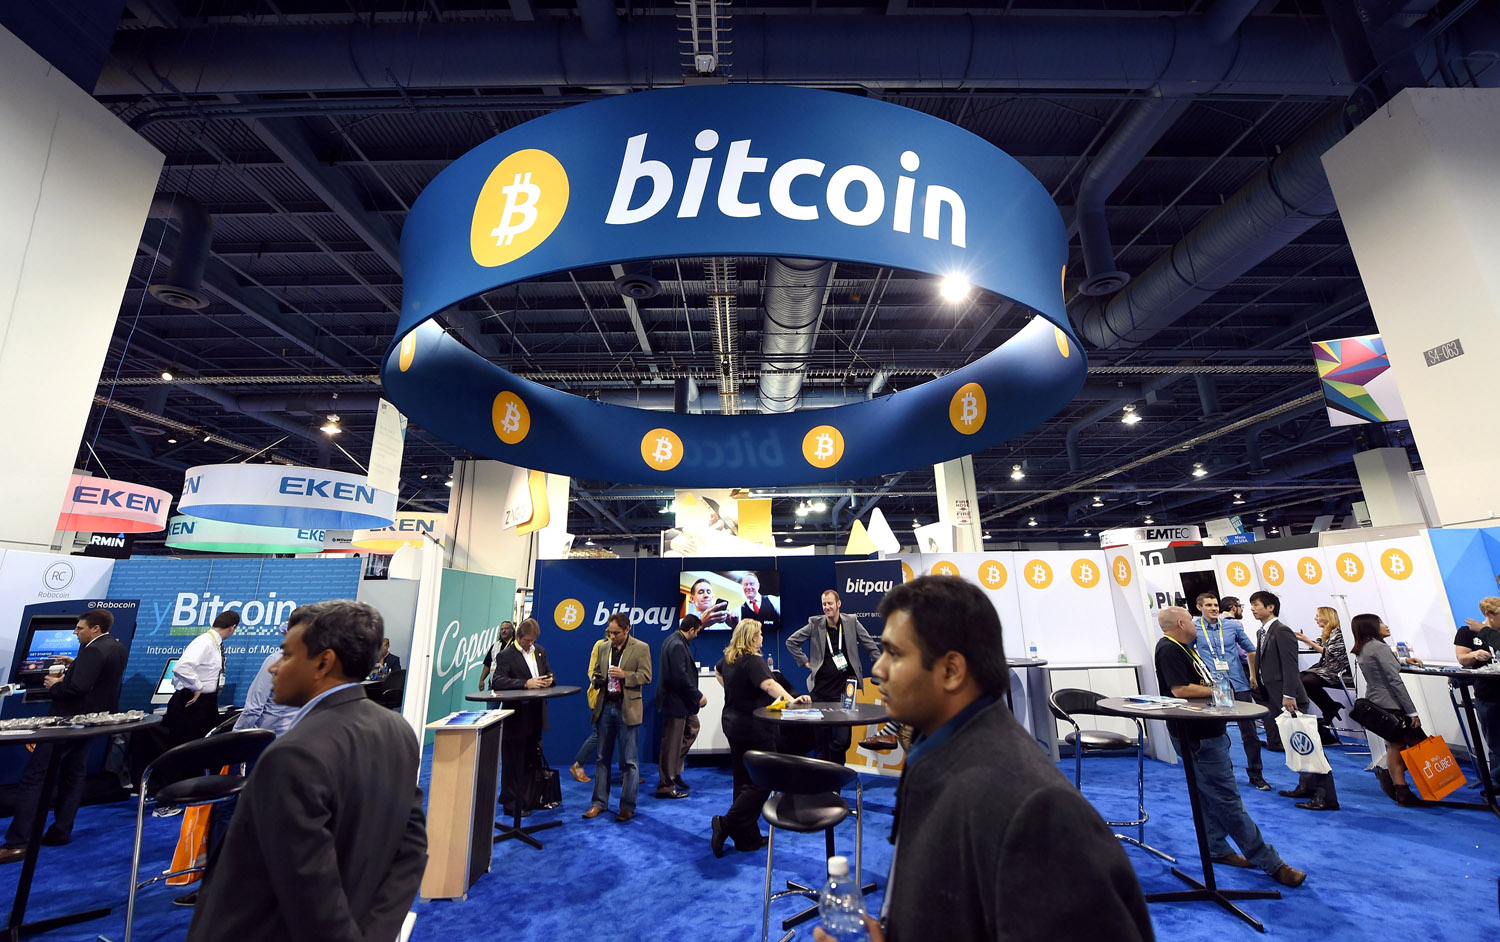 A general view of the Bitcoin booth at the 2015 International CES at the Las Vegas Convention Center on Jan. 8, 2015 in Las Vegas, Nevada.